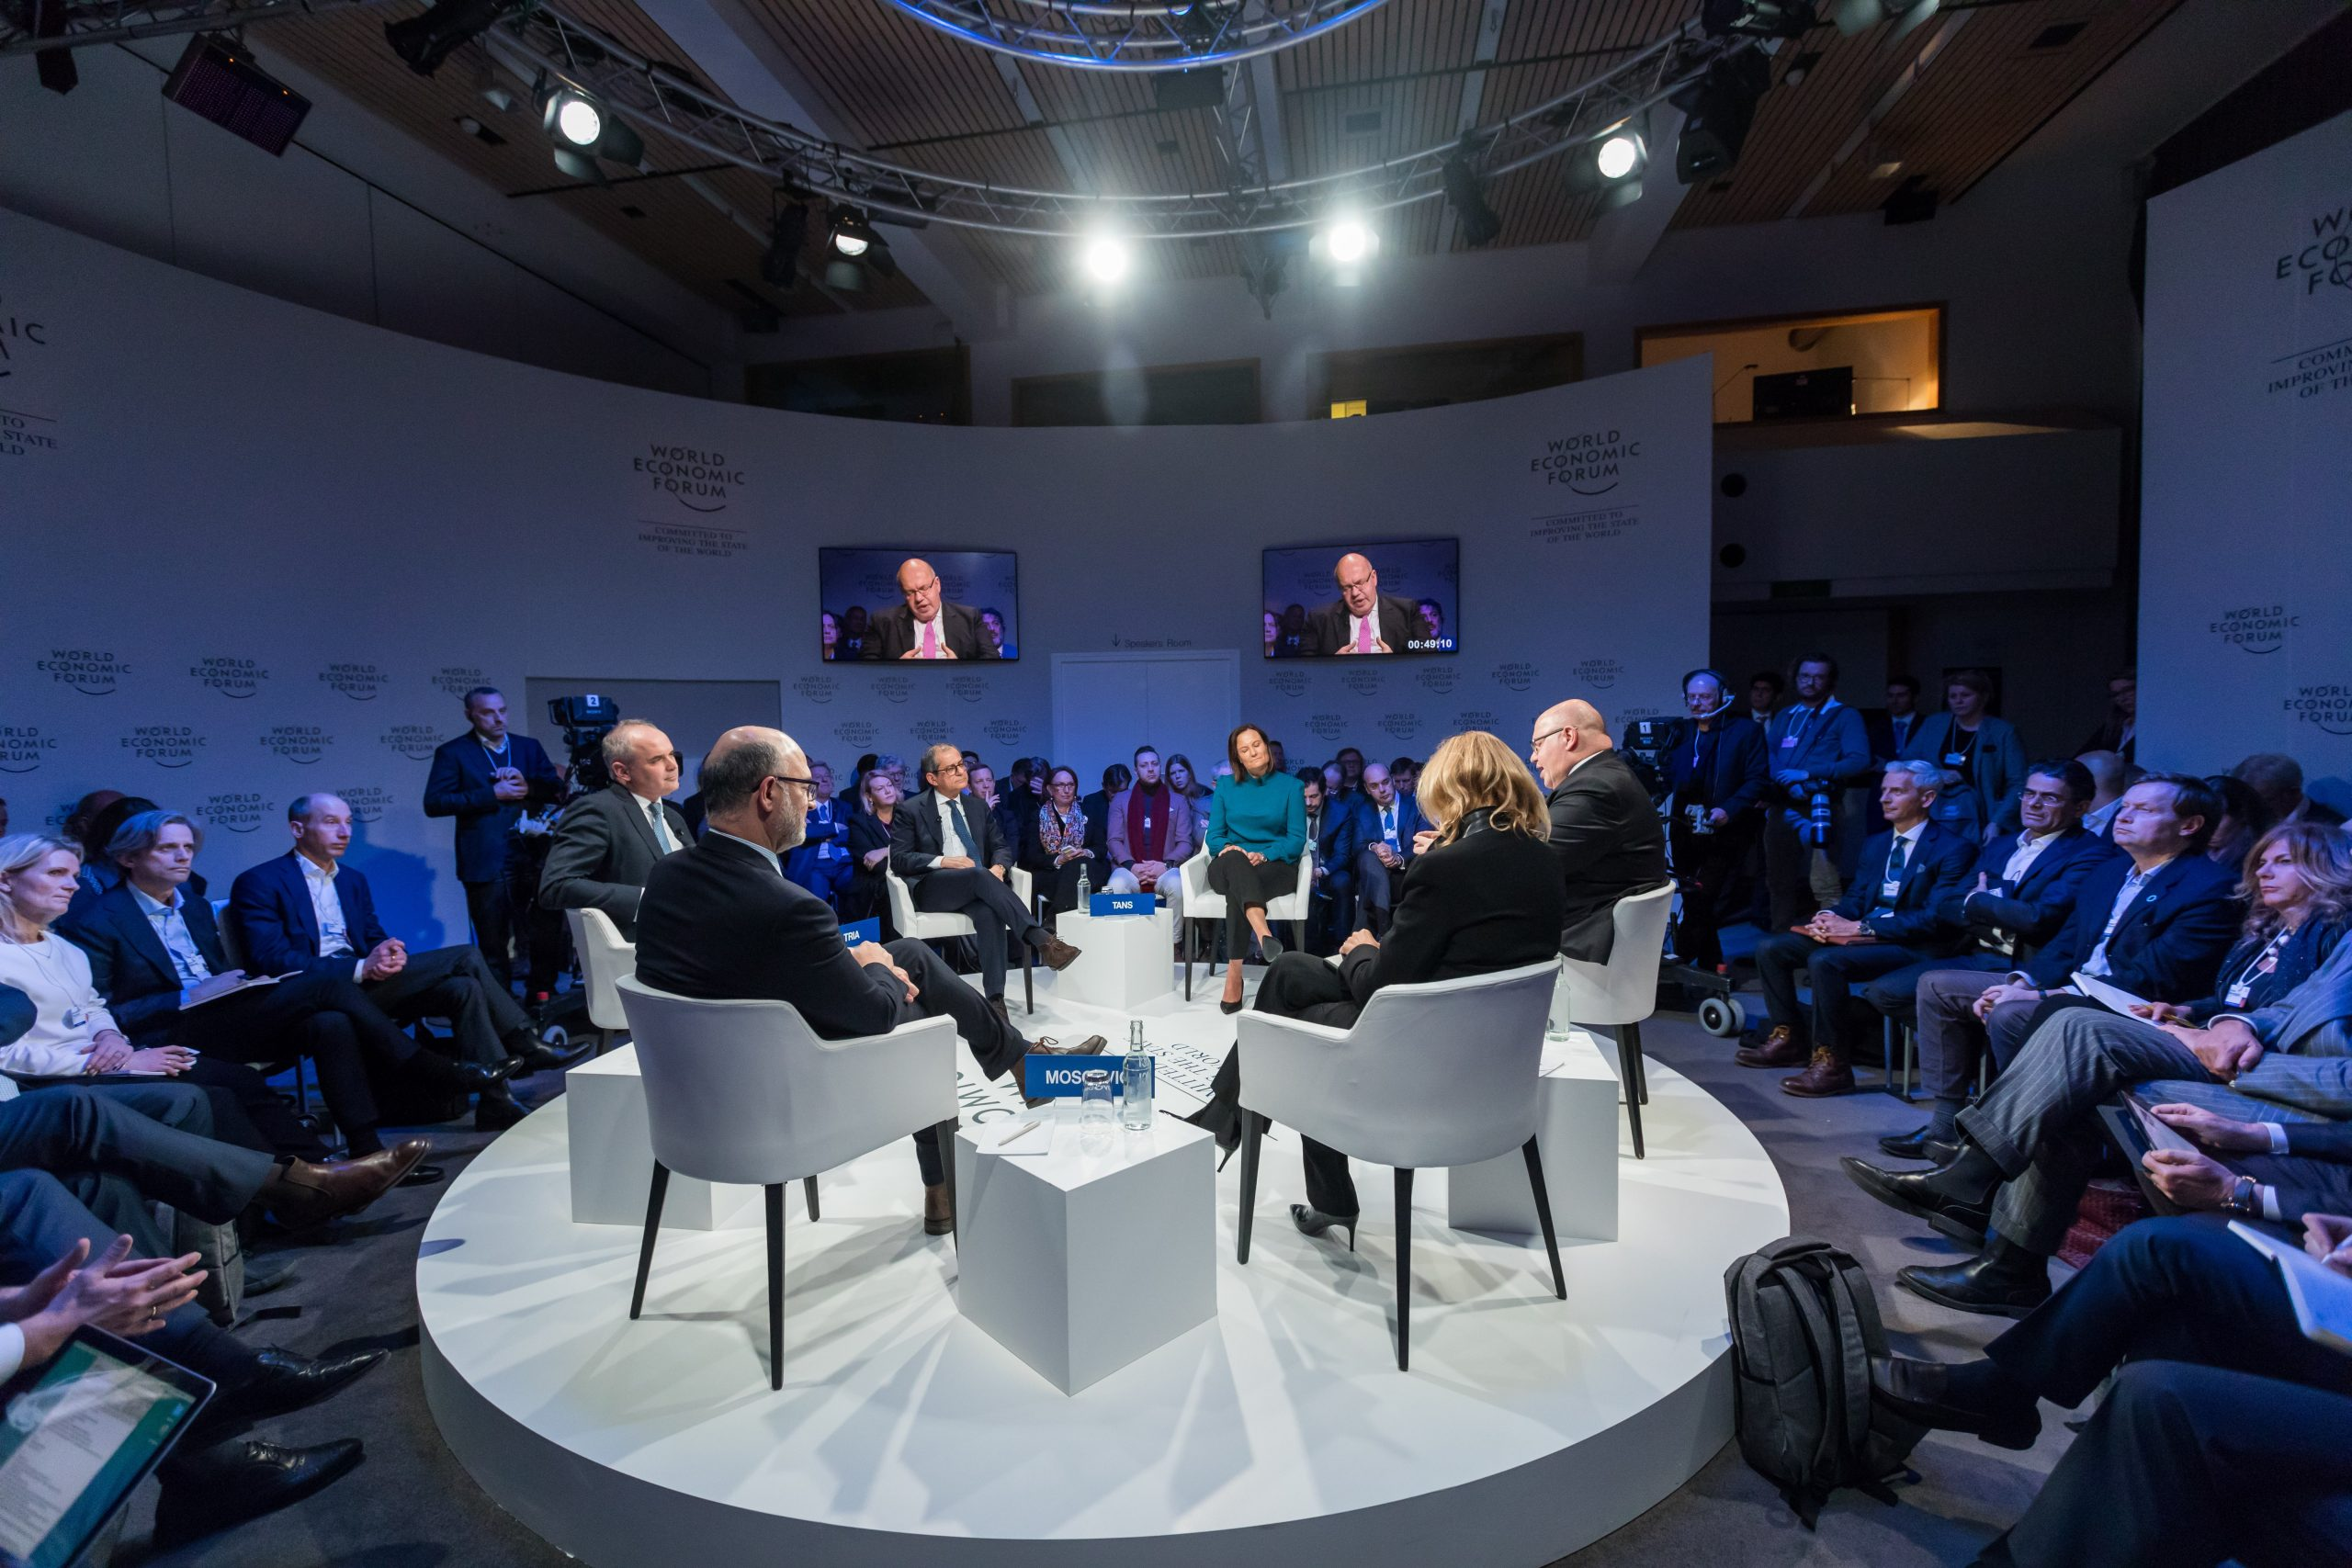 panel discussion at a hybrid event